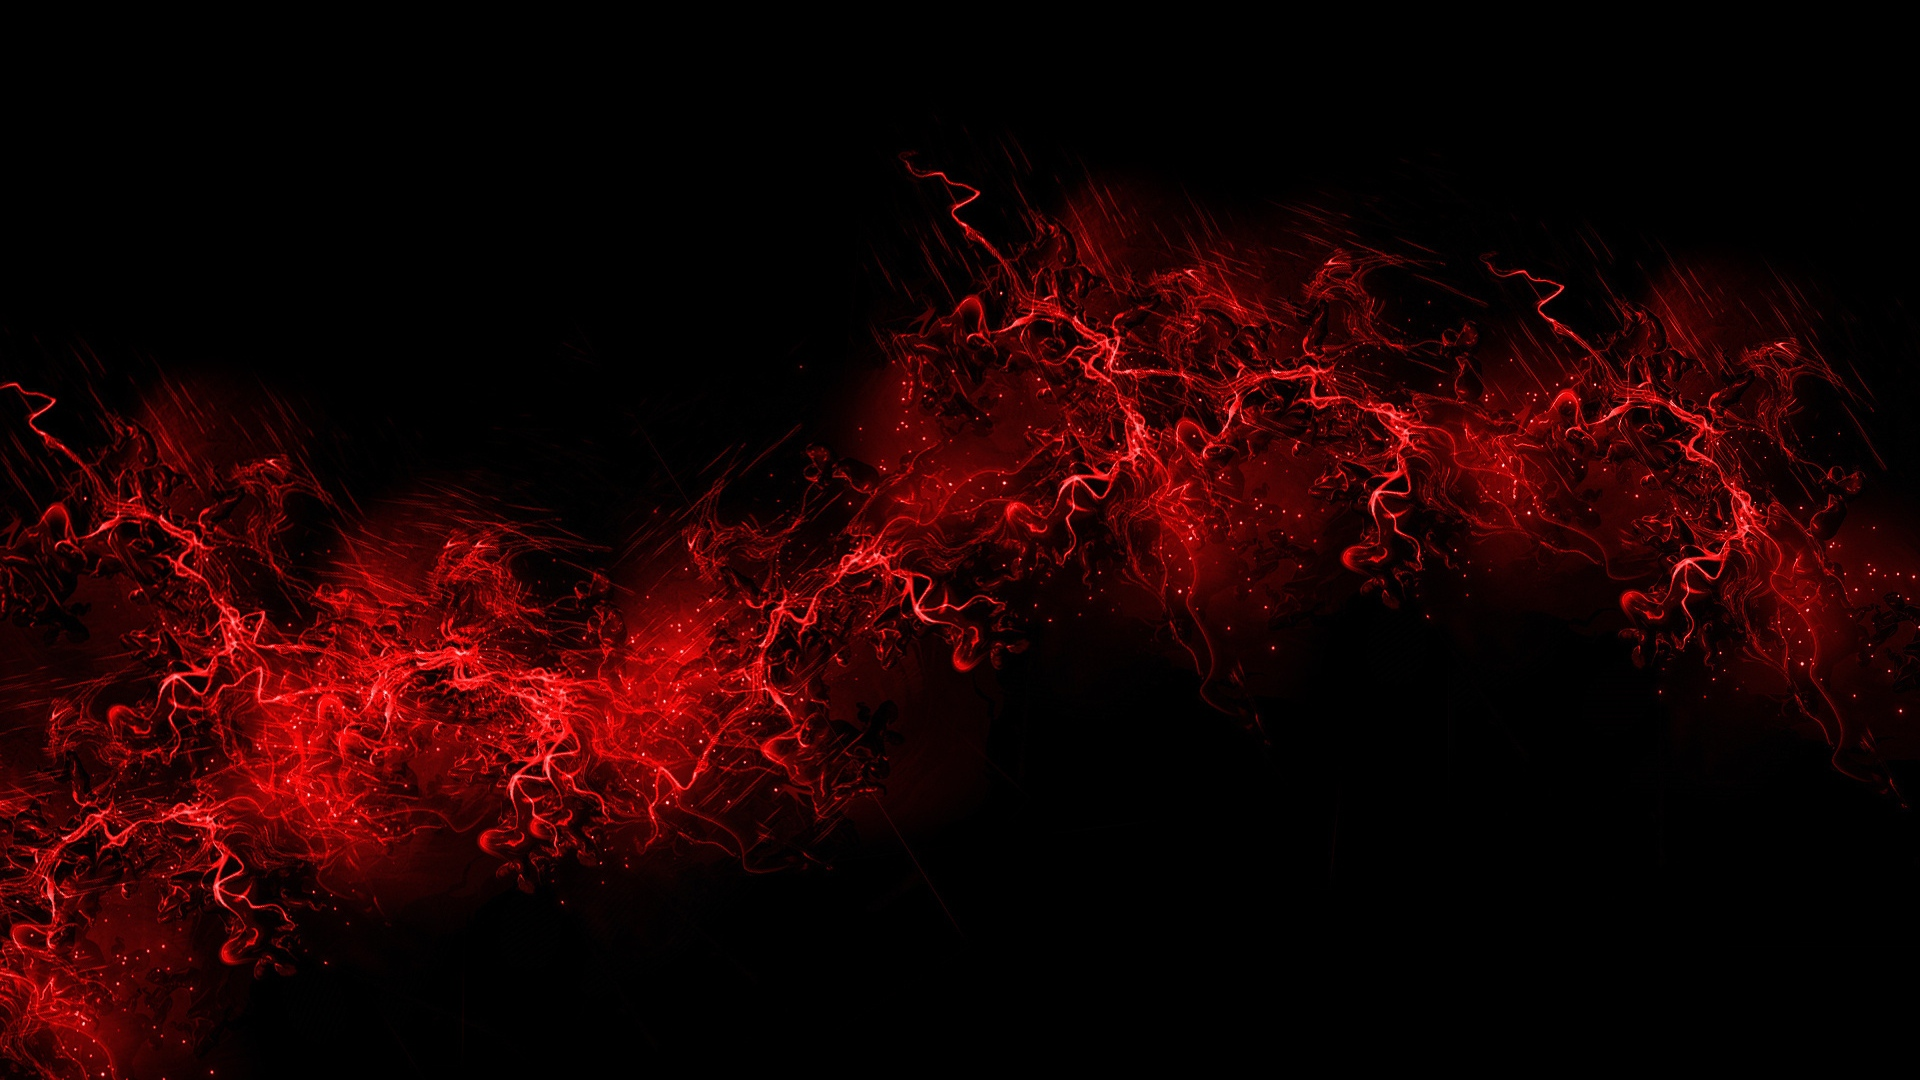 HD Wallpaper Black And Red